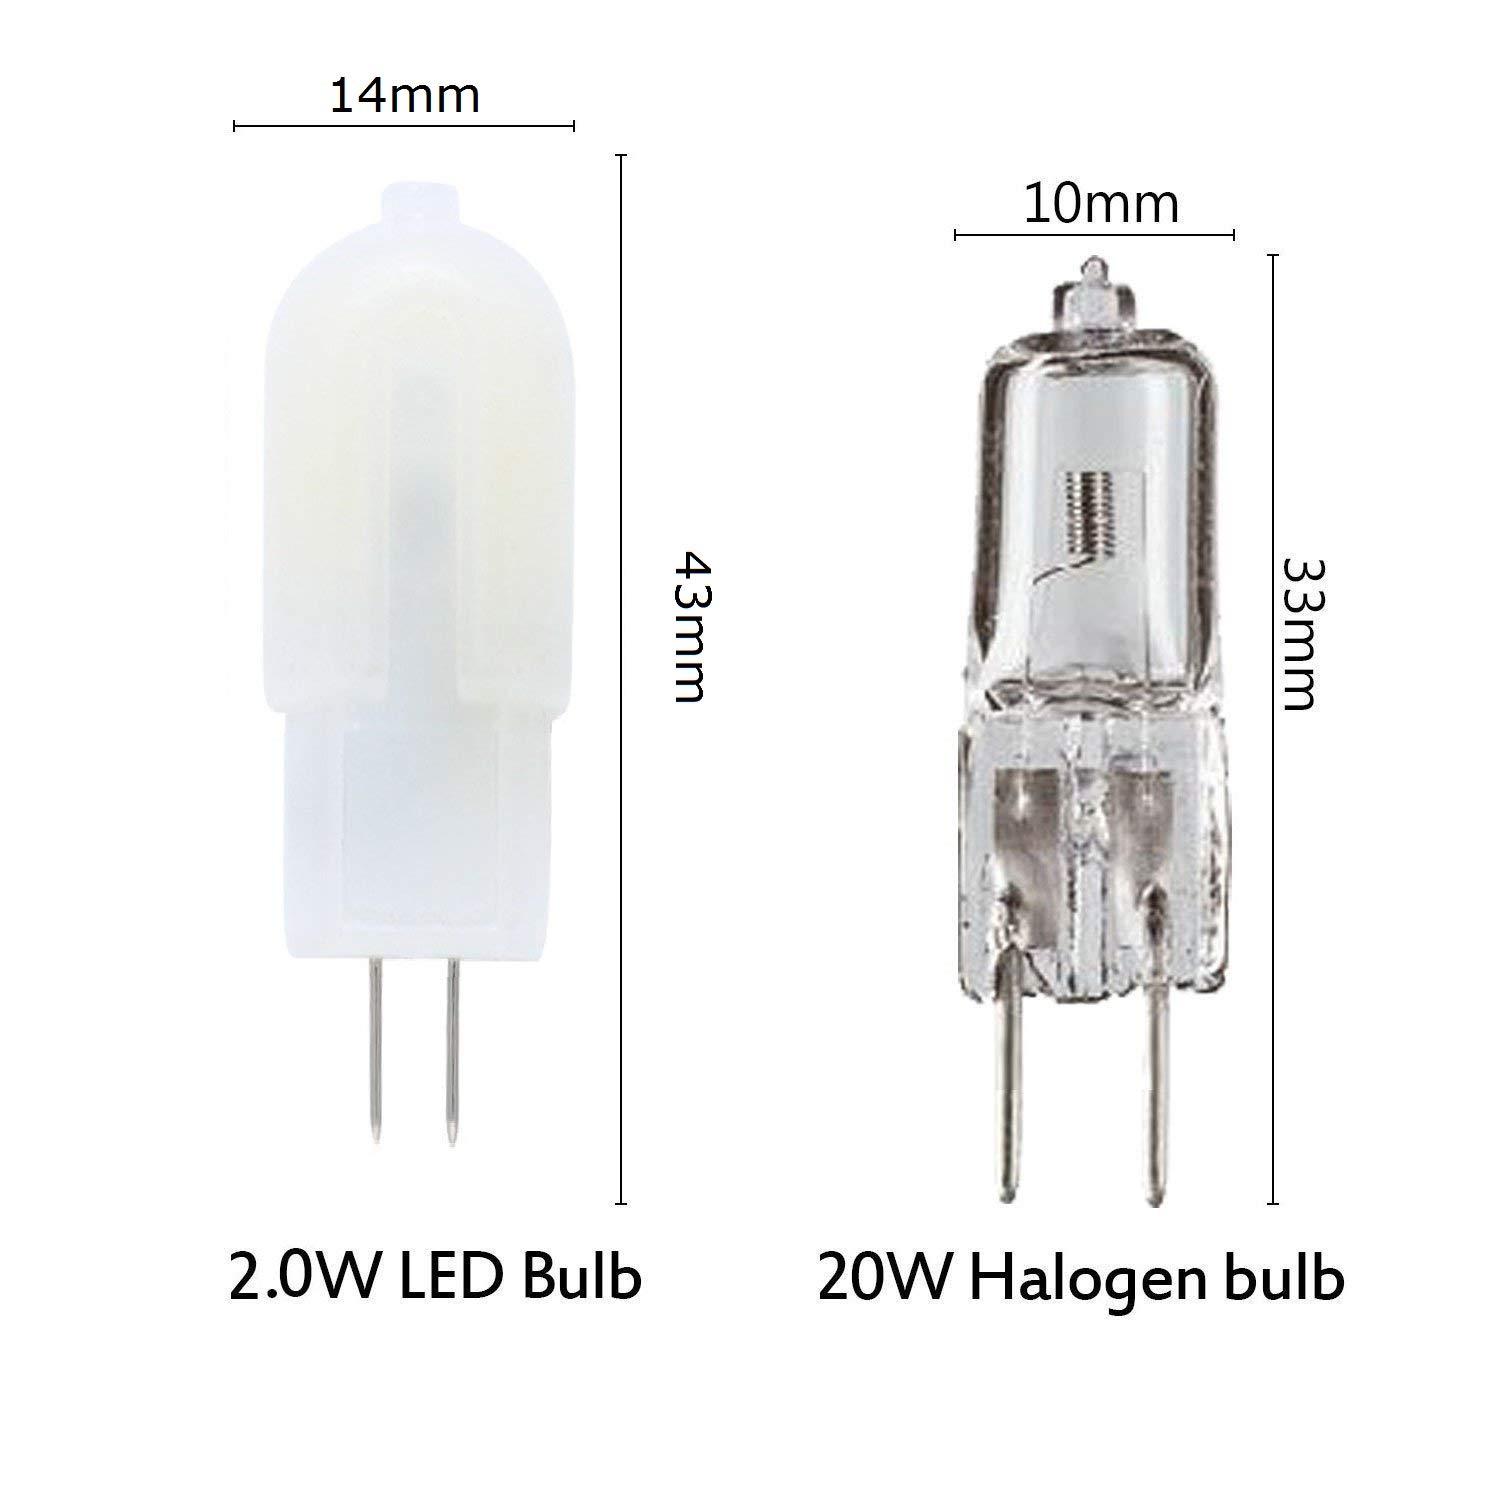 360 Degree Beam Angle 160LM 3000K Warm White Non-Dimmable Capsule Light Bulbs Vlio G4 LED Bulbs 10 Pack 2W 12 LED 2835SMD Replace 20W Halogen Bulbs DC//AC 12V